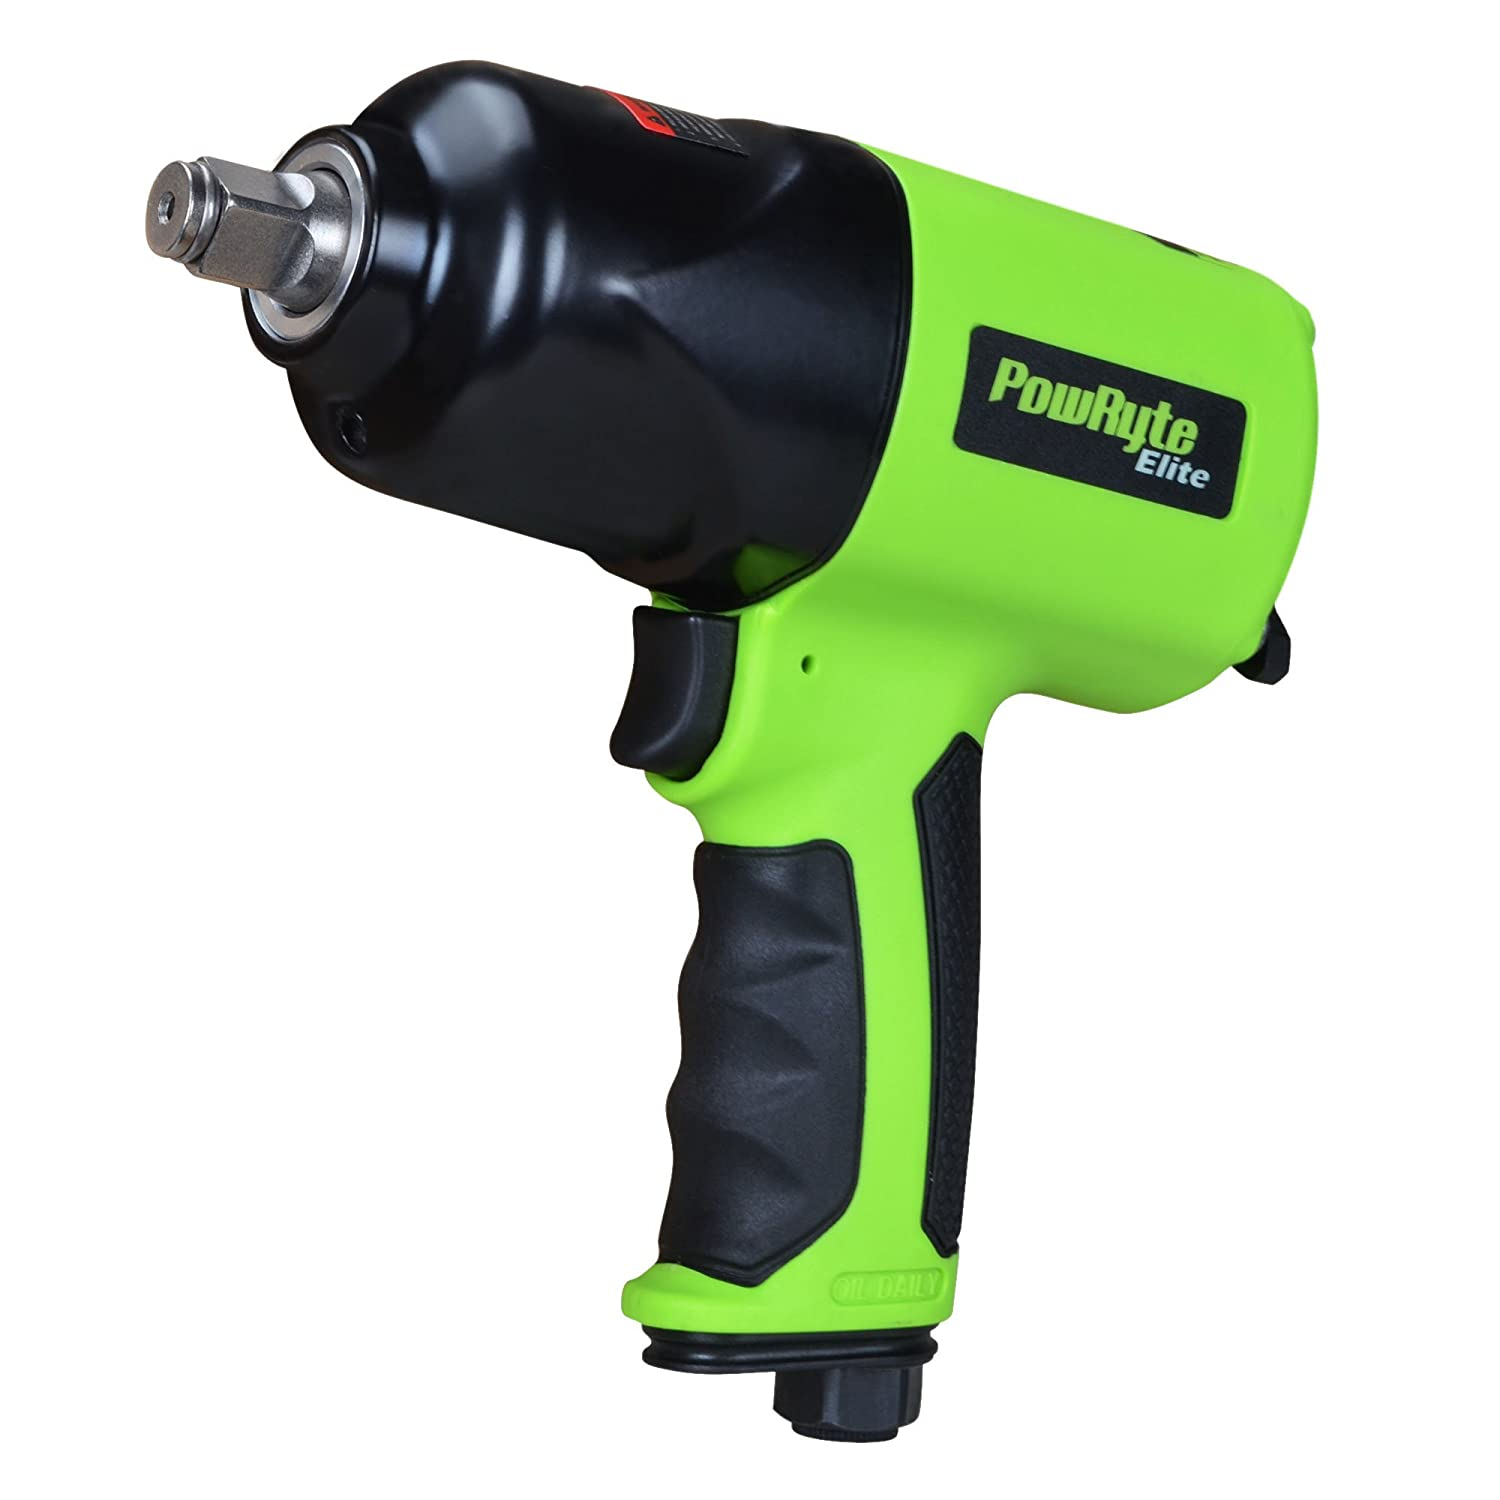 PowRyte 500036 Elite 1/2-Inch Composite Heavy Duty Air Impact Wrench (Twin Hammer) by PowRyte Eosmos 5000360